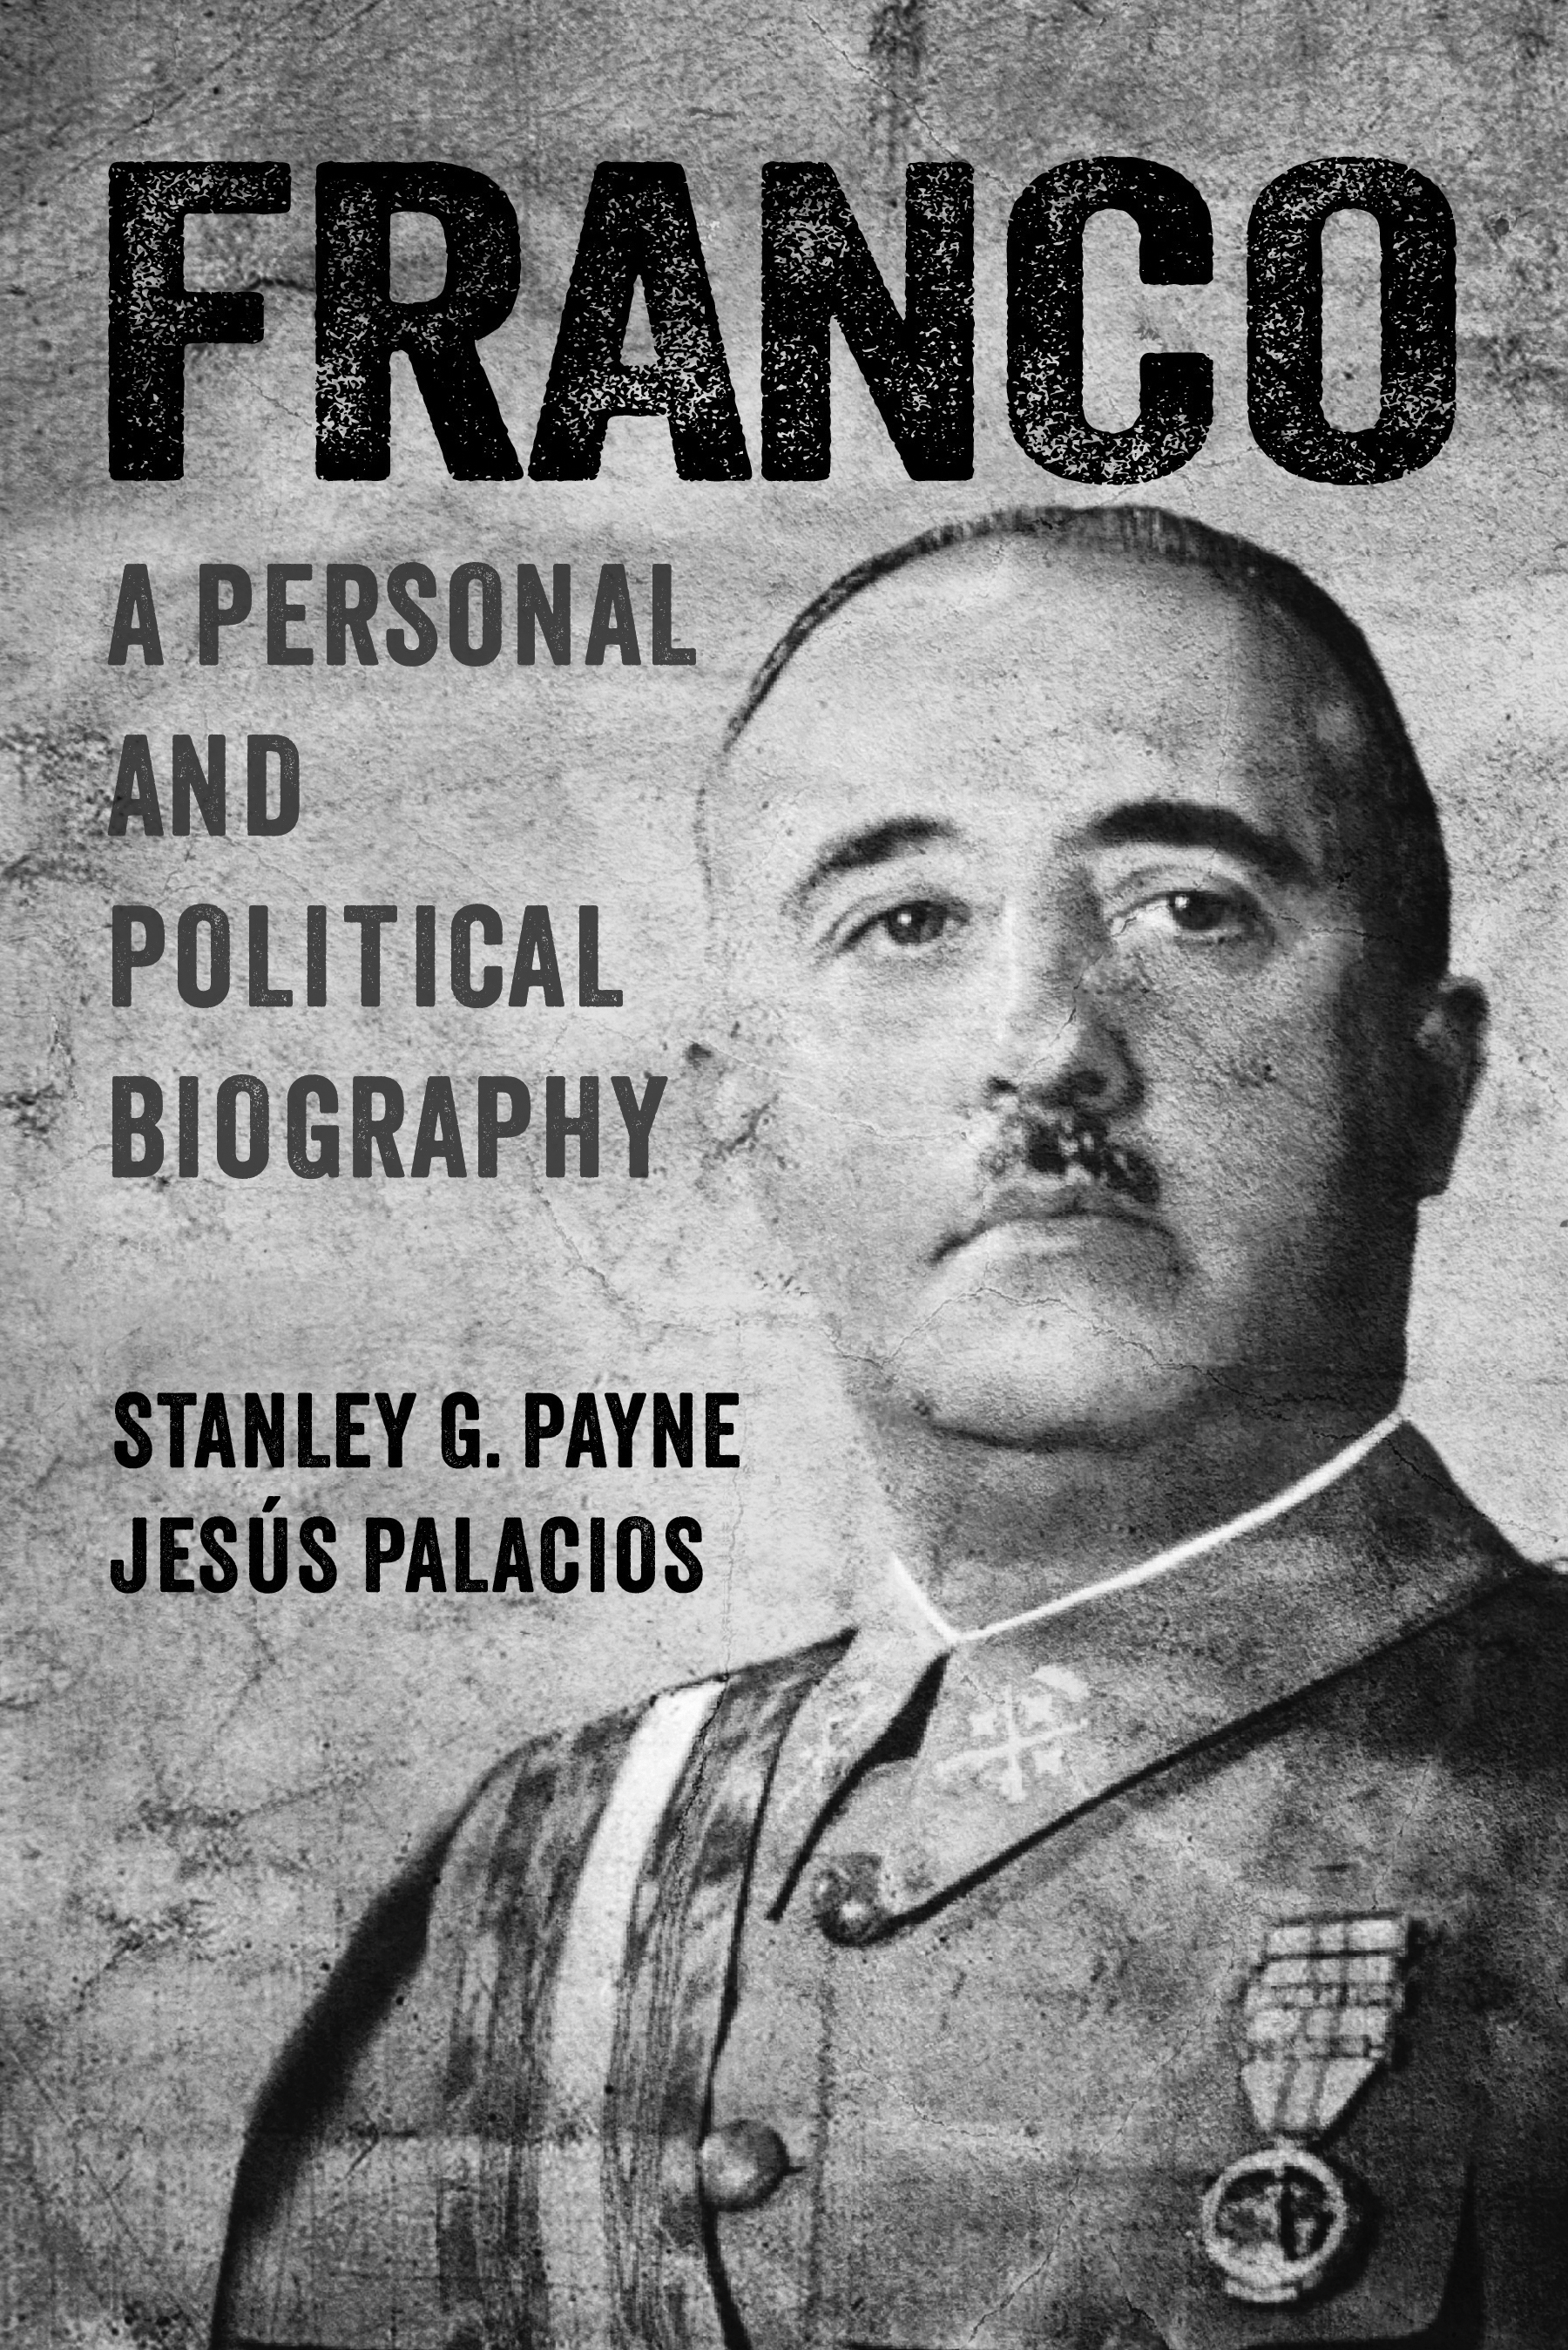 uw press franco a personal and political biography